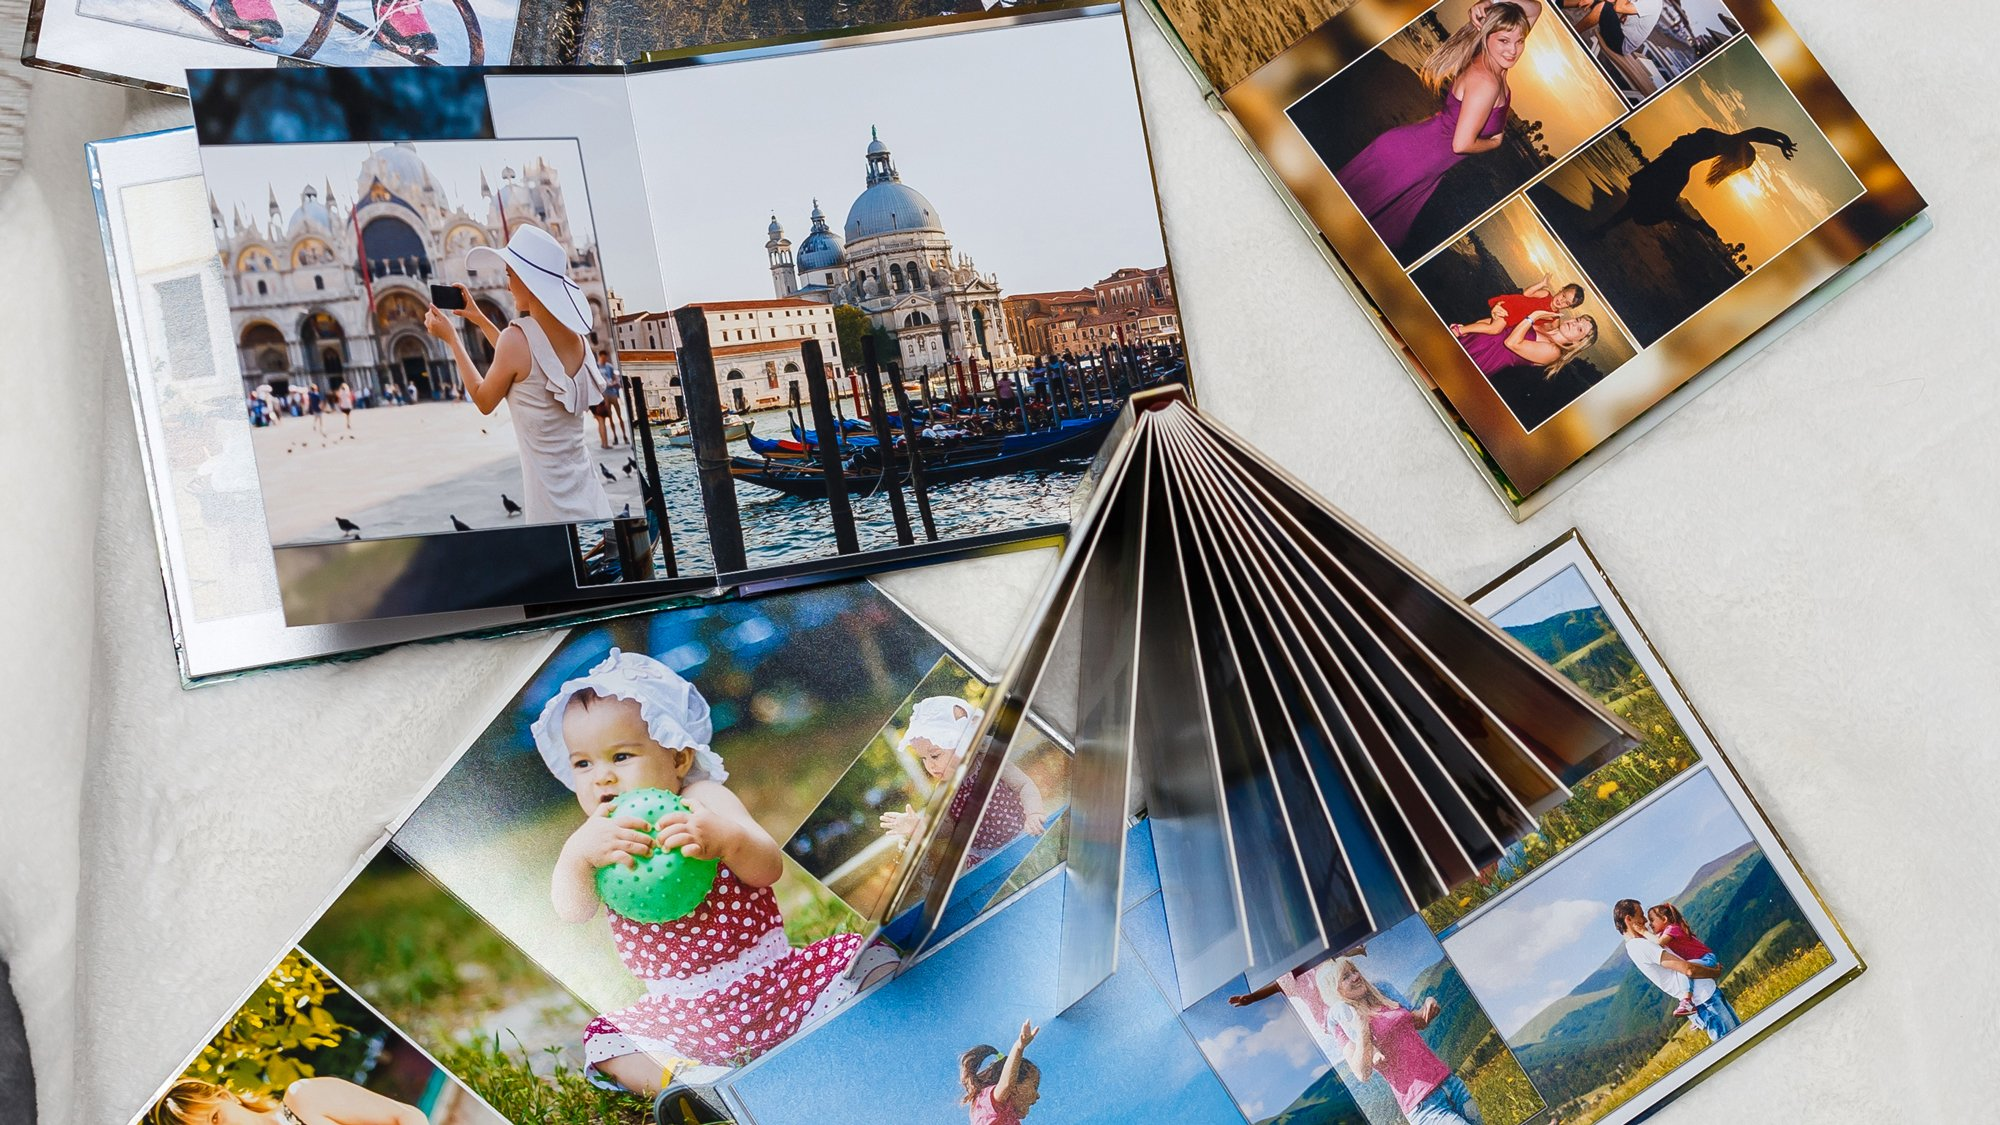 Best Photo Book 2021 Hold On To Your Cherished Memories With These Diy Photo Albums Expert Reviews